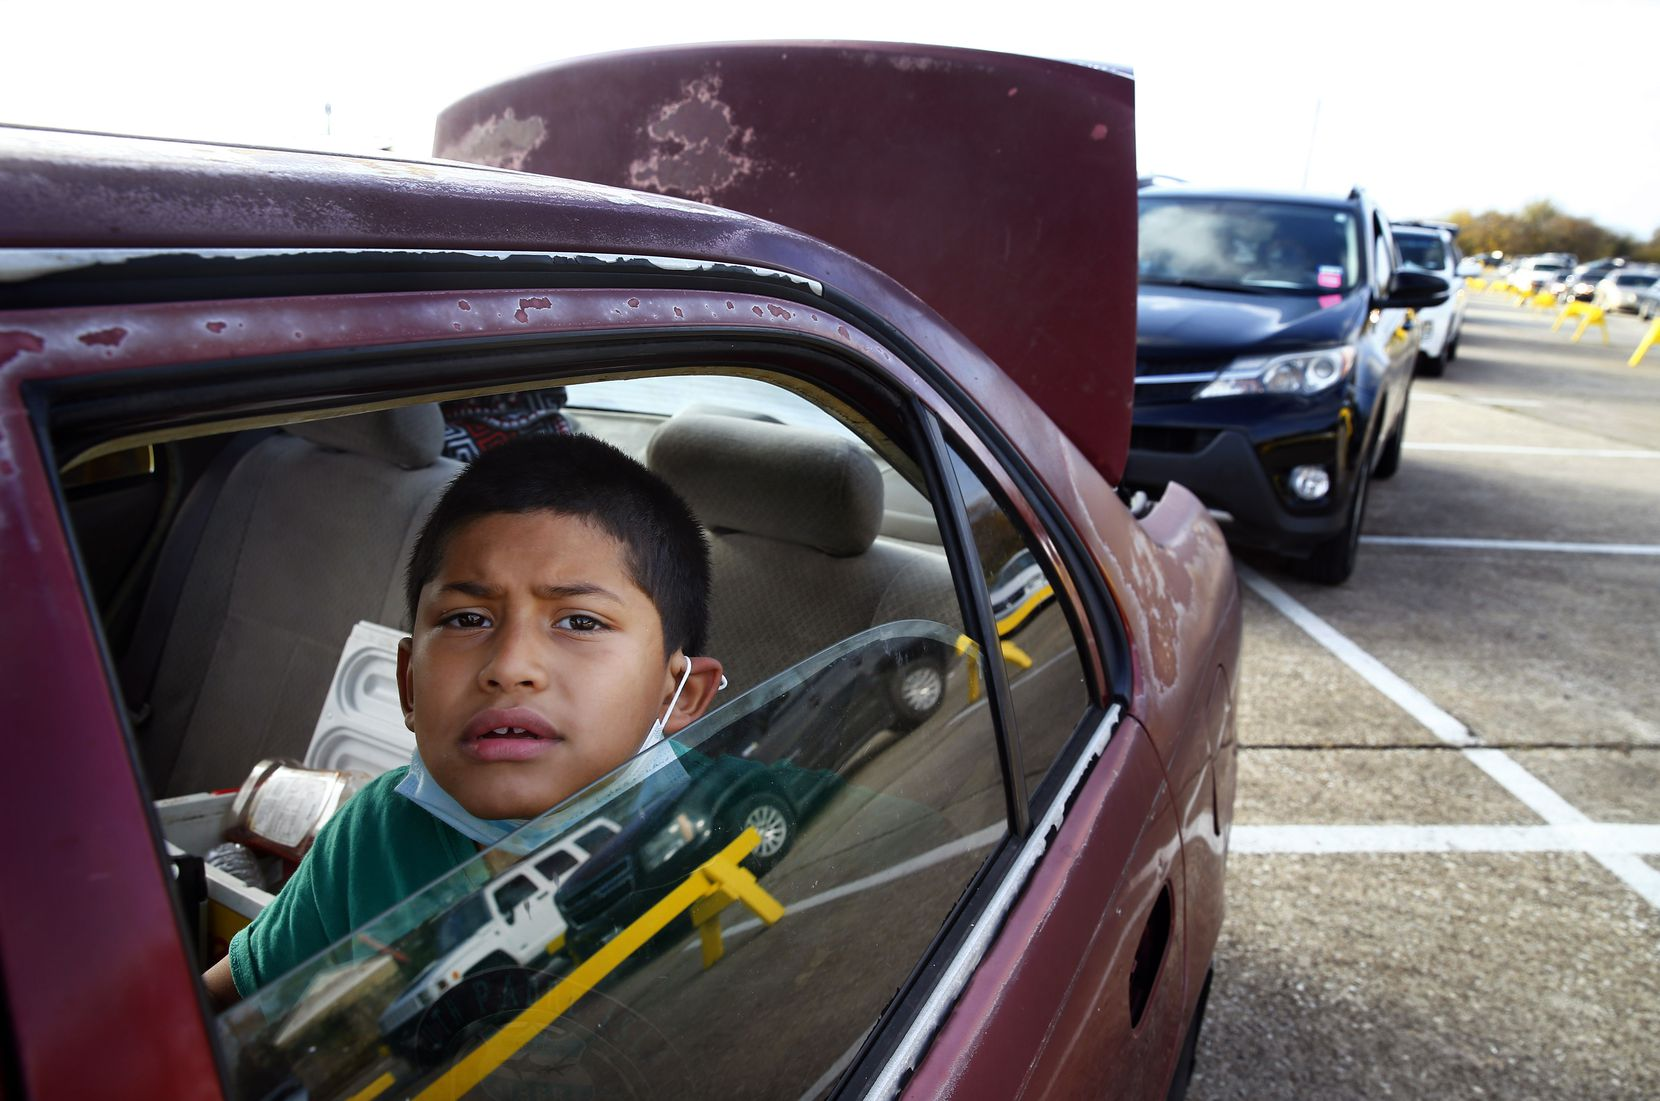 Ivan Gonzalez, 7, waited overnight with his stepfather in their car to get food.